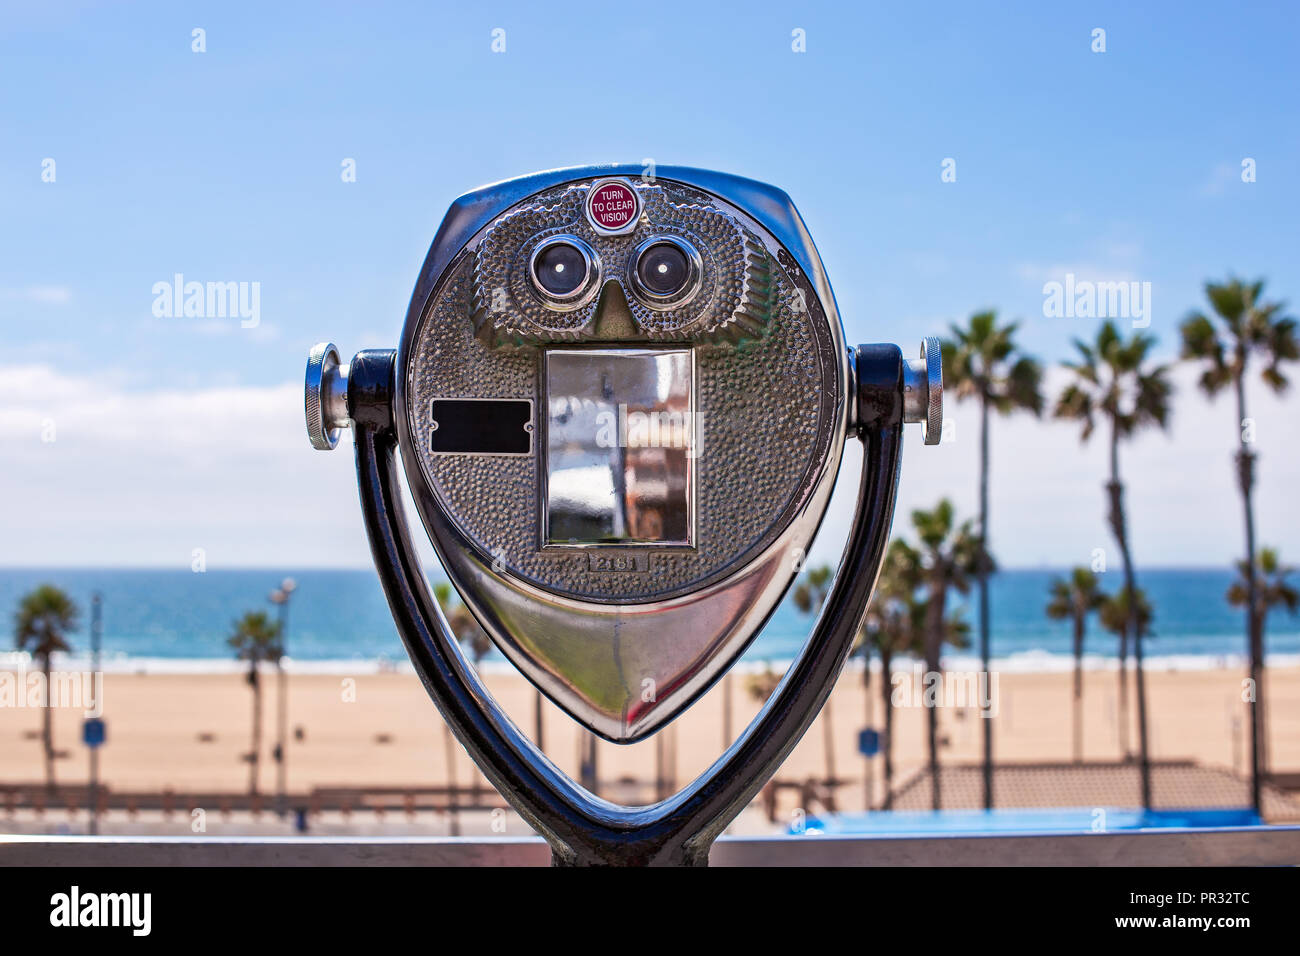 Coin operated binoculars looking out over a beach scene with palm trees, sand and the Pacific Ocean in Huntington Beach, California. - Stock Image